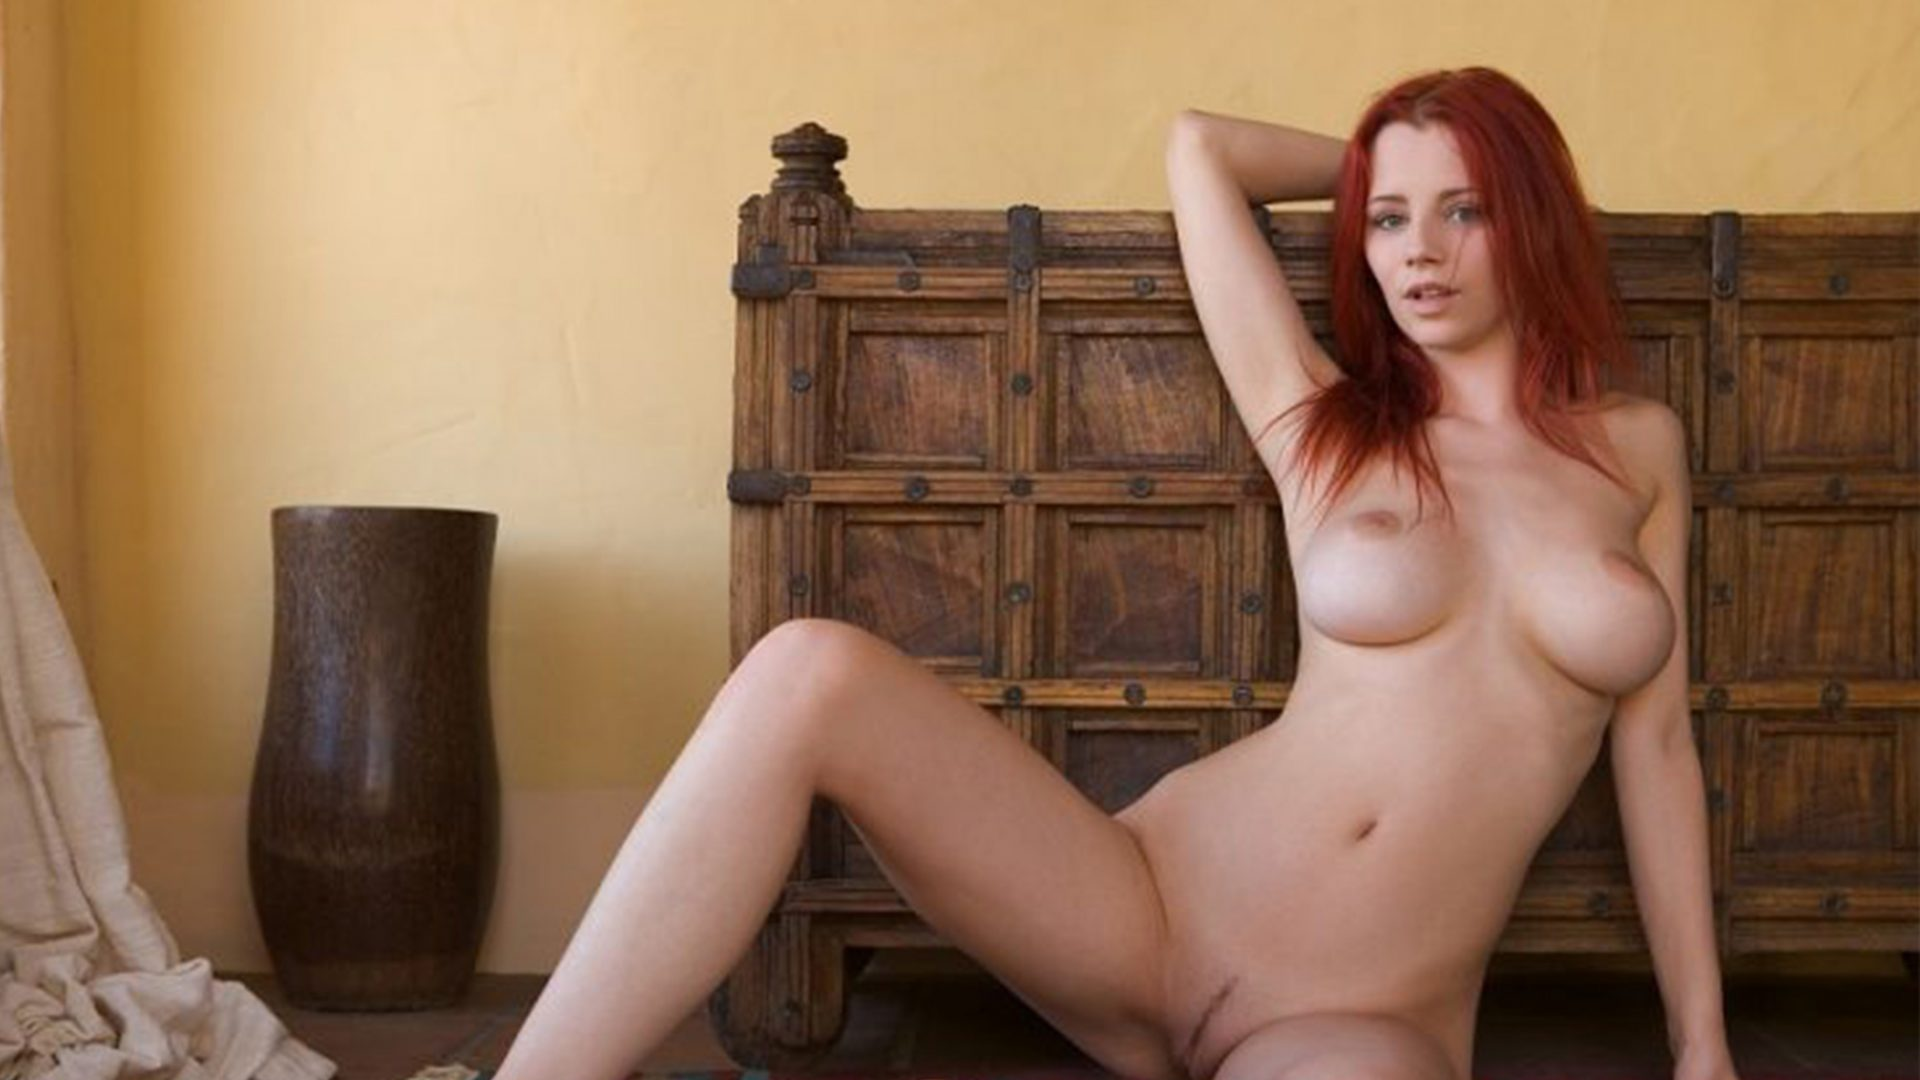 Anne - 22 Years Old Redhead Escort